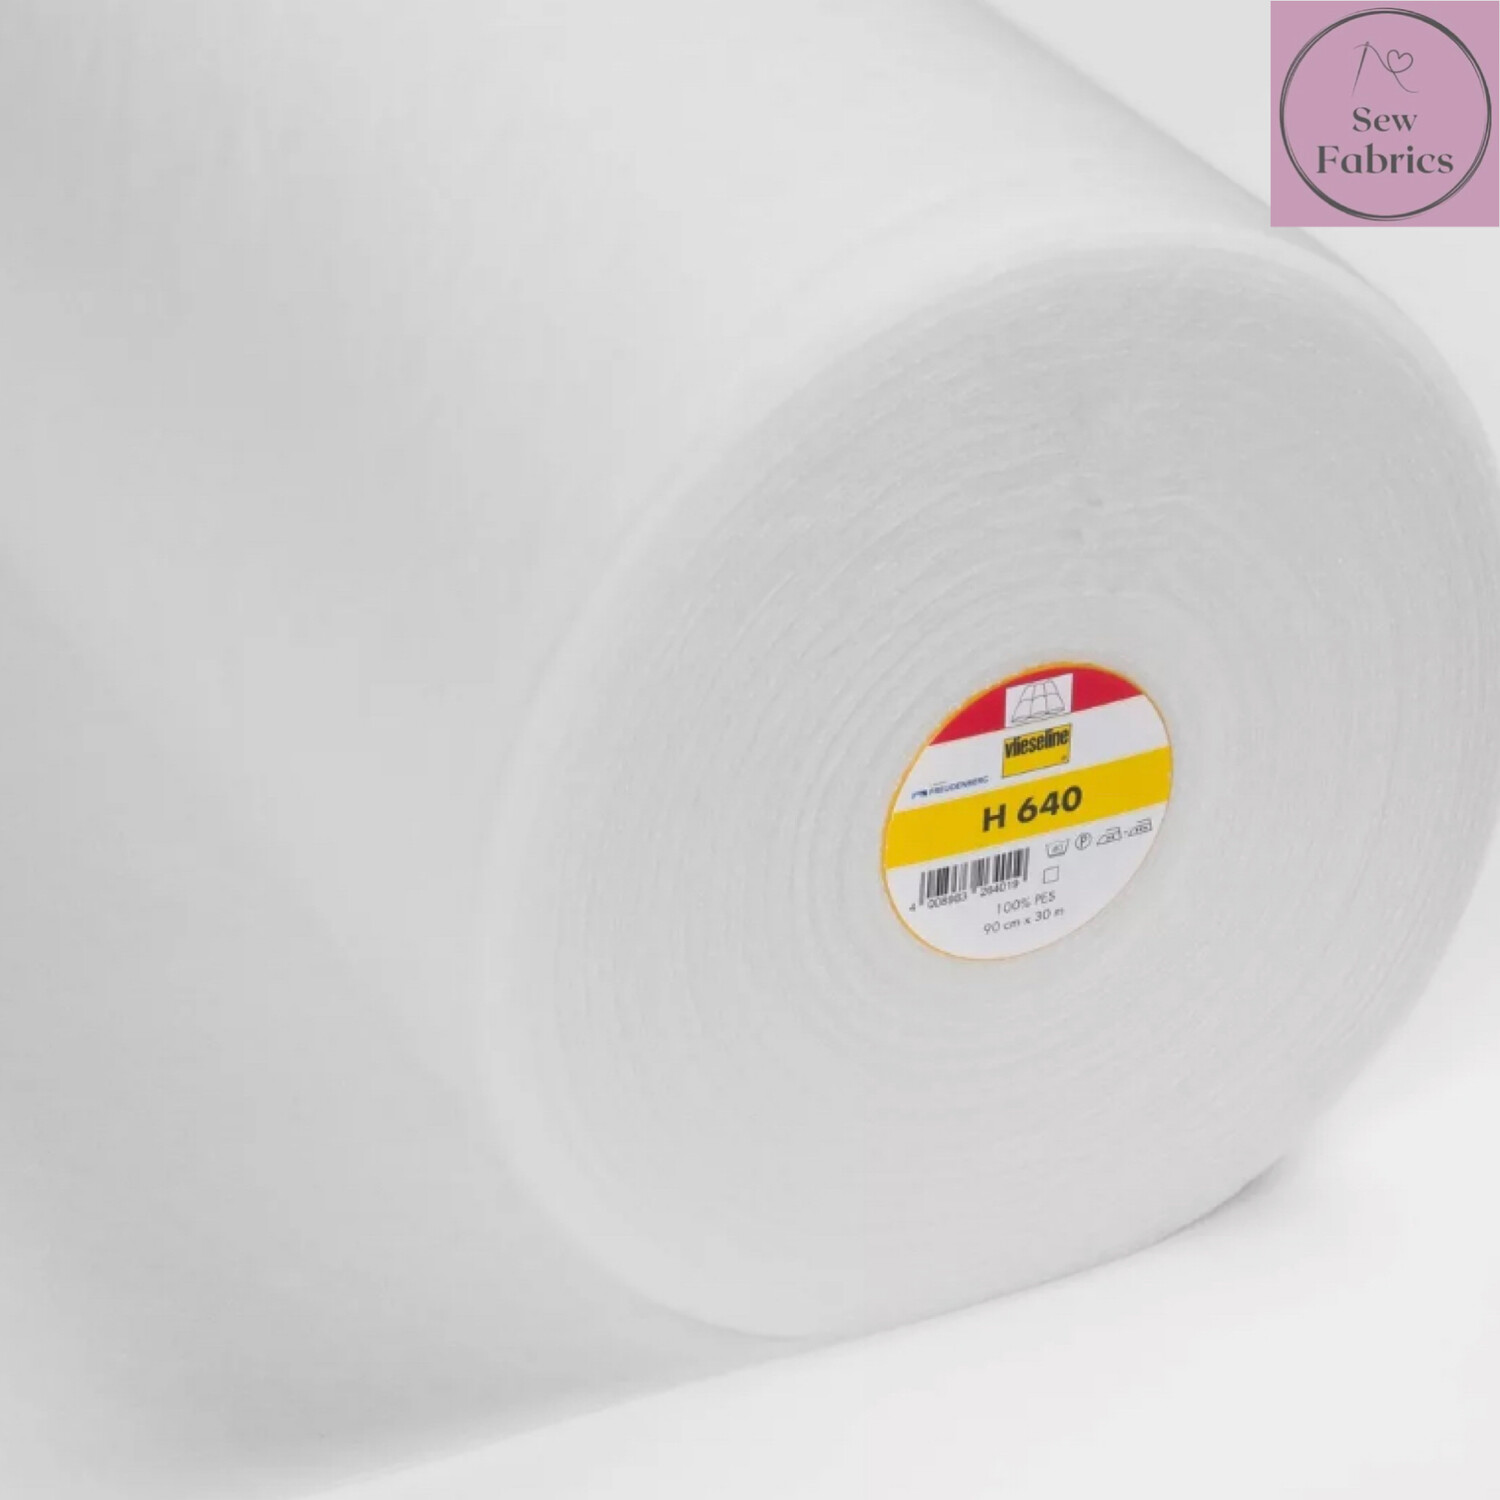 1m x White Medium Loft Fusible Fleece Wadding / Batting, 90cm Wide by Vilene Vlieseline, for applique and clothing applications. H640